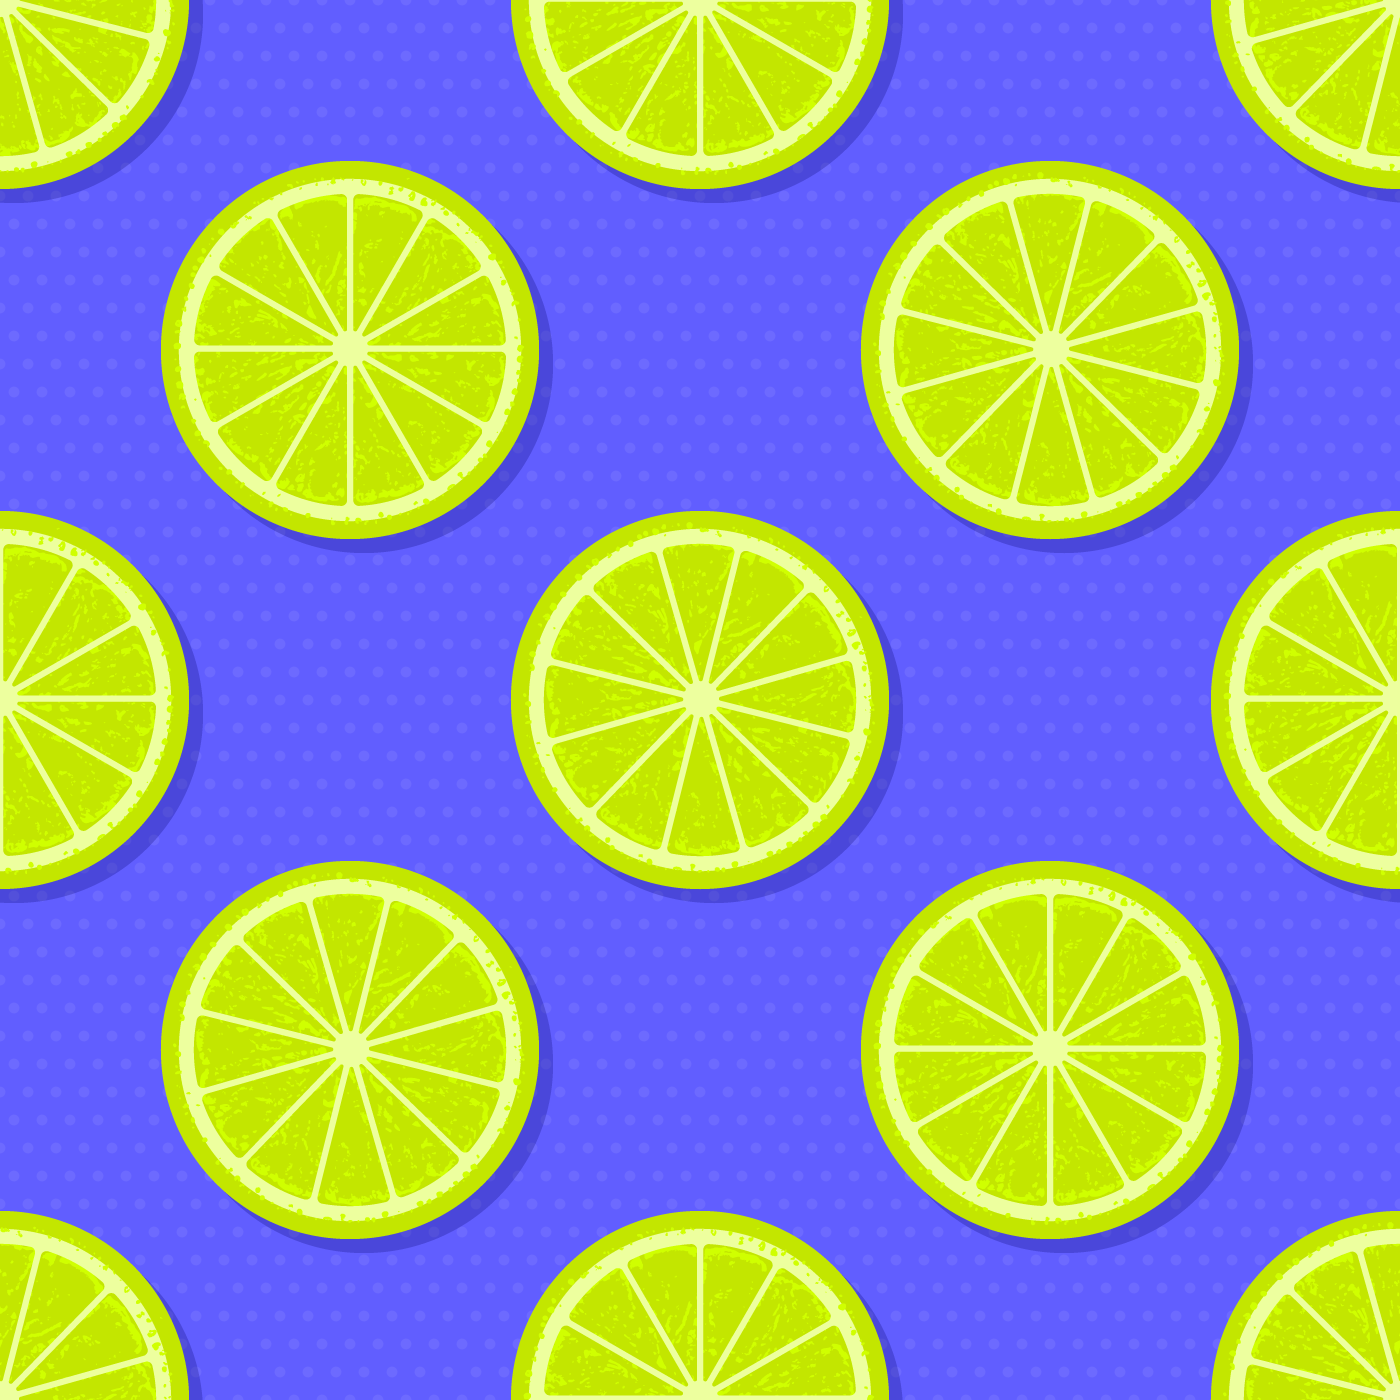 Slices Lime Summer Background - Download Free Vectors, Clipart Graphics & Vector Art